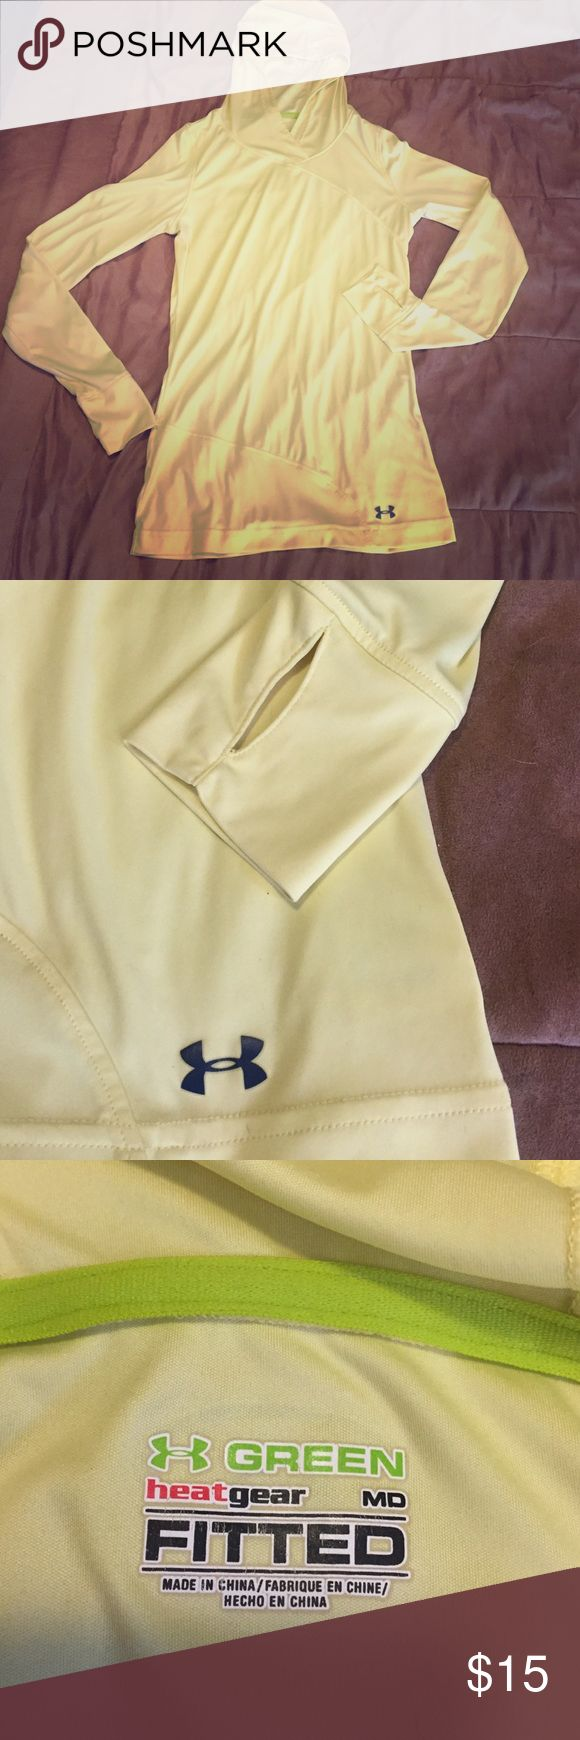 UnderArmour fitted longsleeve ❄️❄️❄️ Minimal wear , yellow fitted longsleeve by under armour. Label says size medium but fits like a small! Heat gear, perfect for workouts or anything light❄️ Under Armour Tops